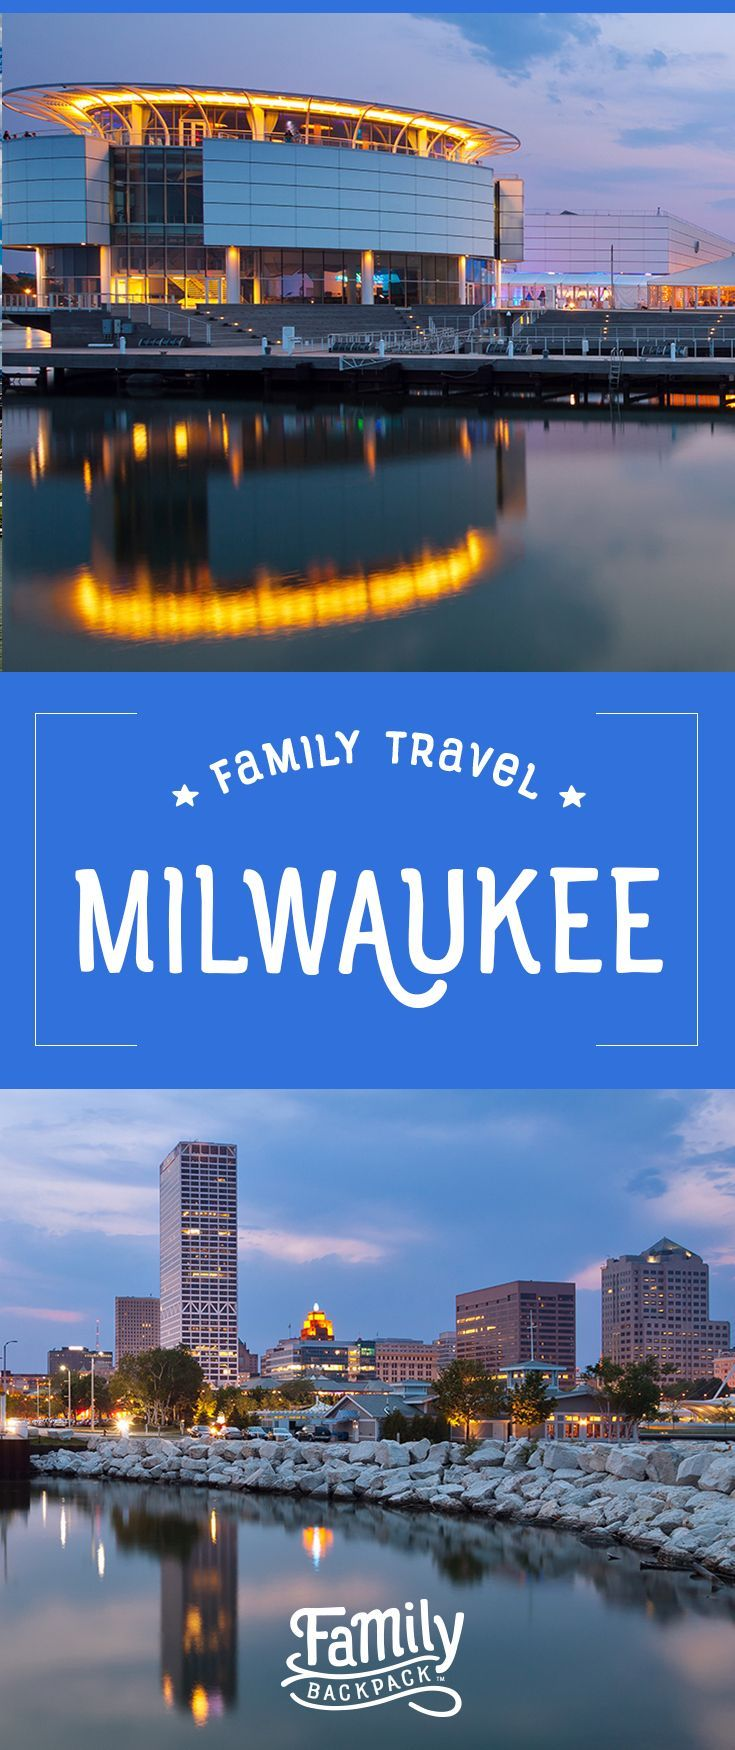 Family travel in milwaukee there are so many fun